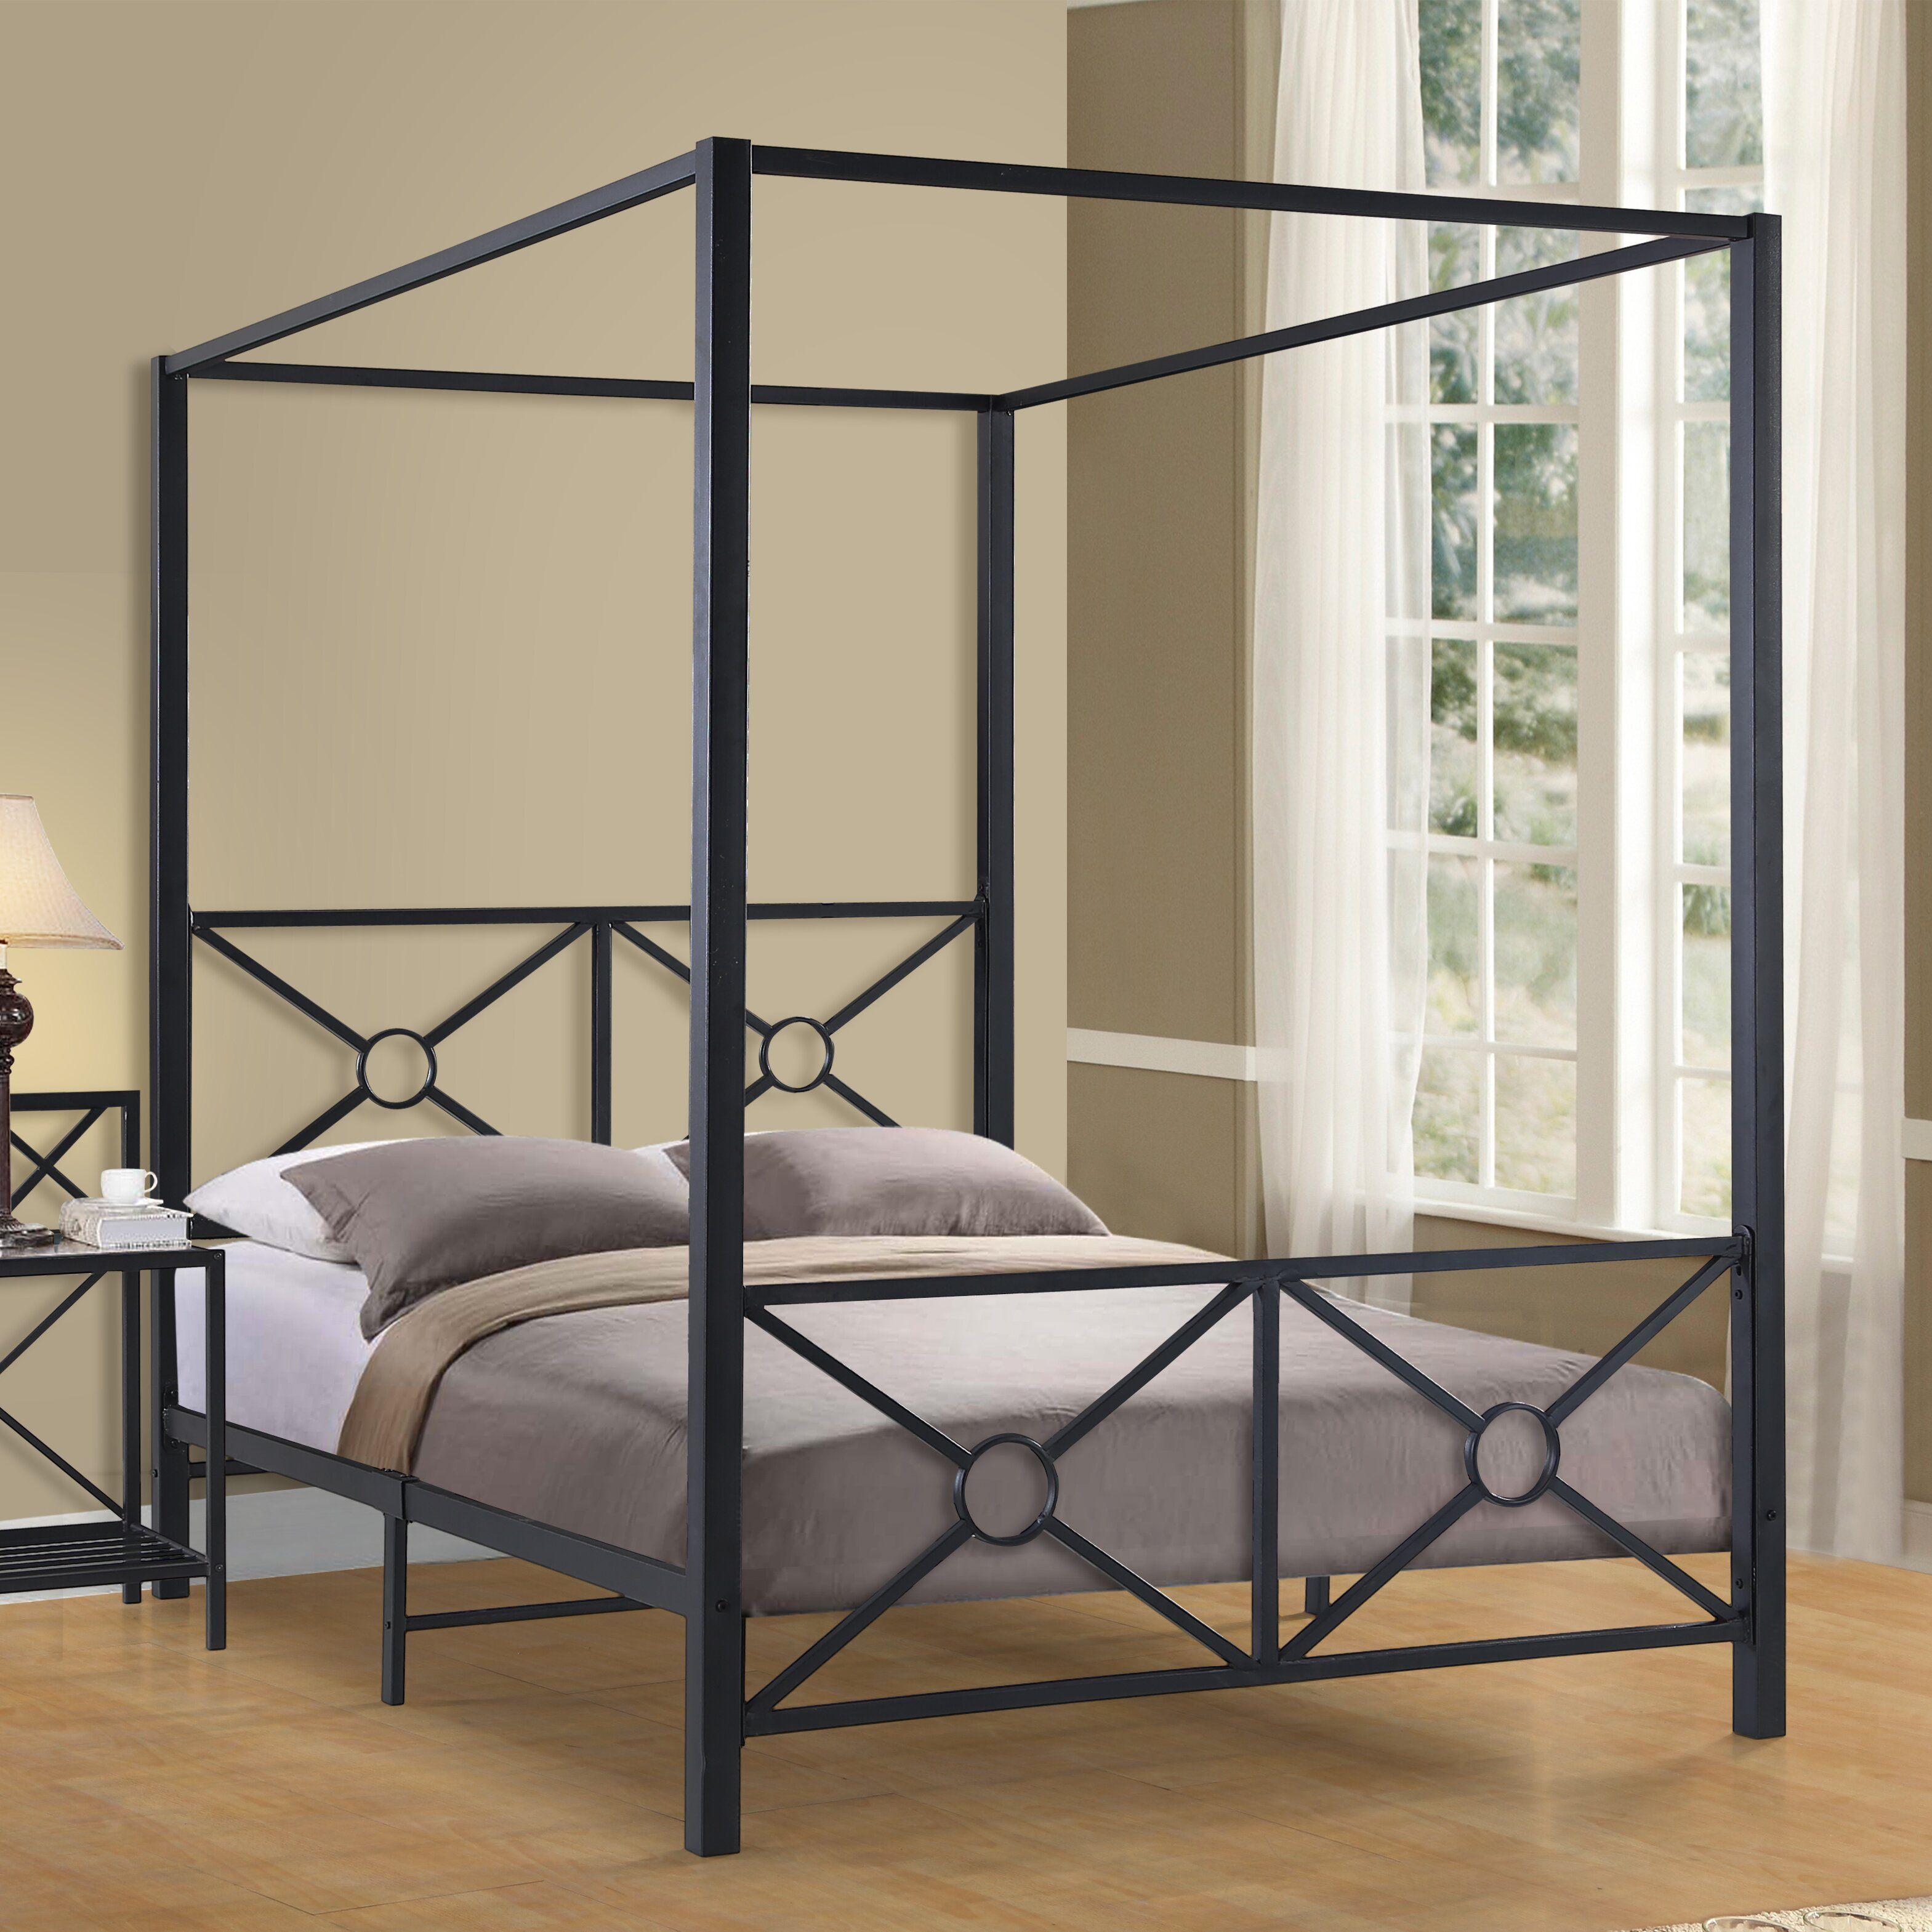 Canopy Beds You'll Love | Wayfair - Symeon Canopy Bed